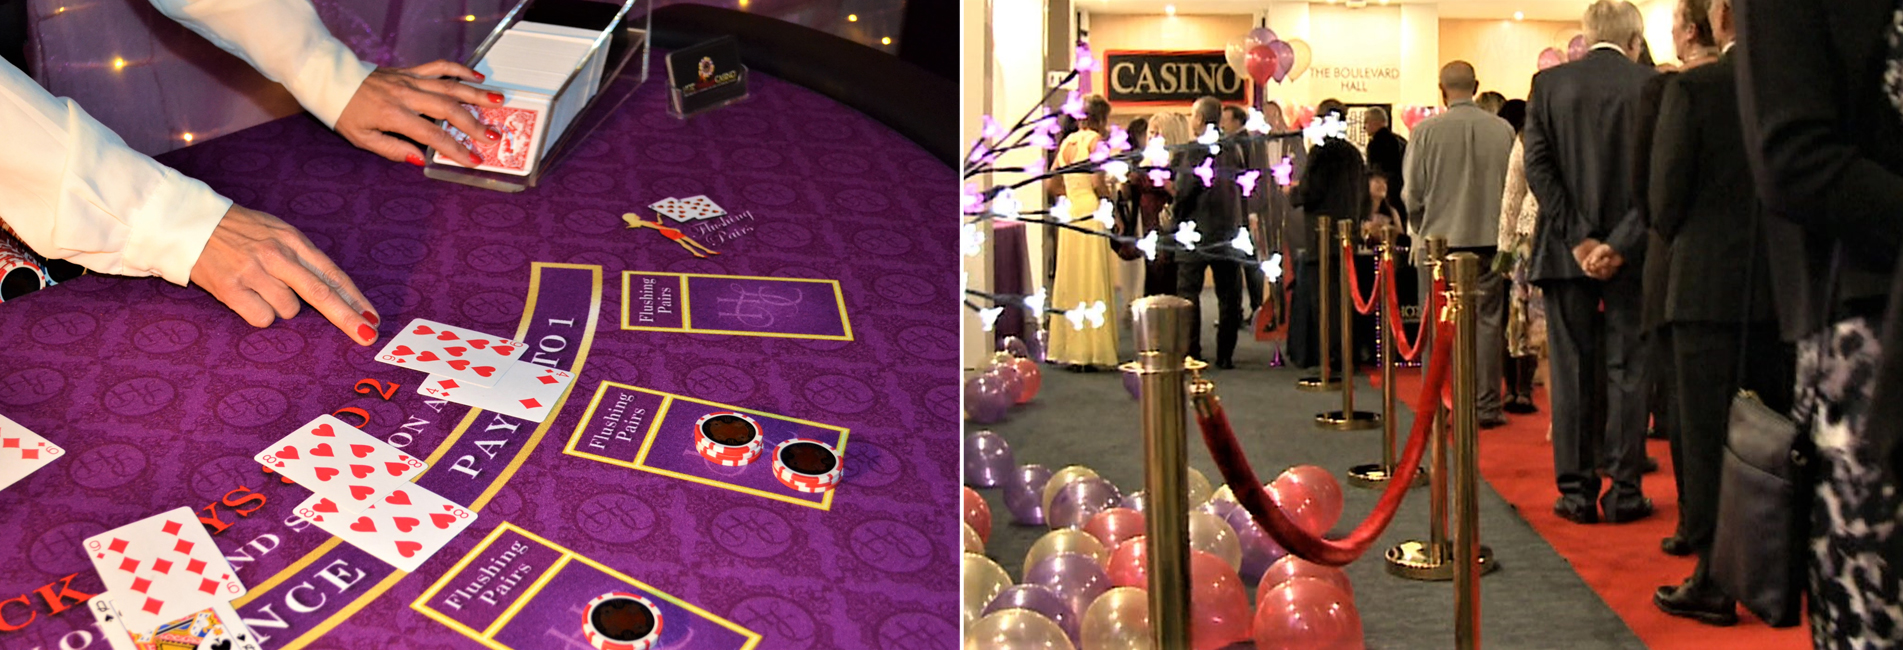 Casino Tables Yanchep, James Bond Casino Hire Mandurah, Casino Hire Joondalup